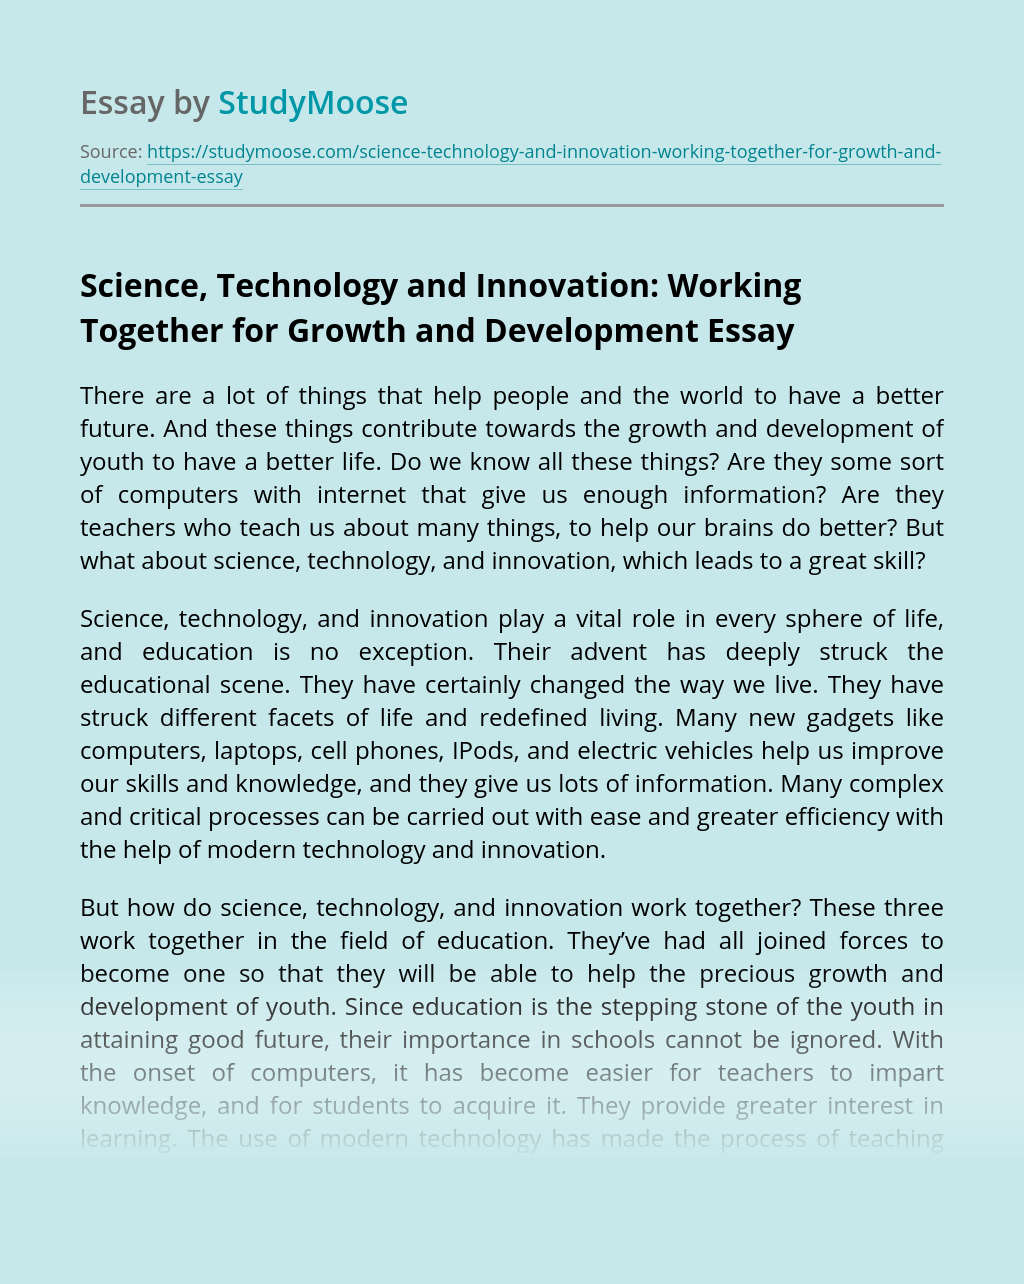 Science, Technology and Innovation: Working Together for Growth and Development